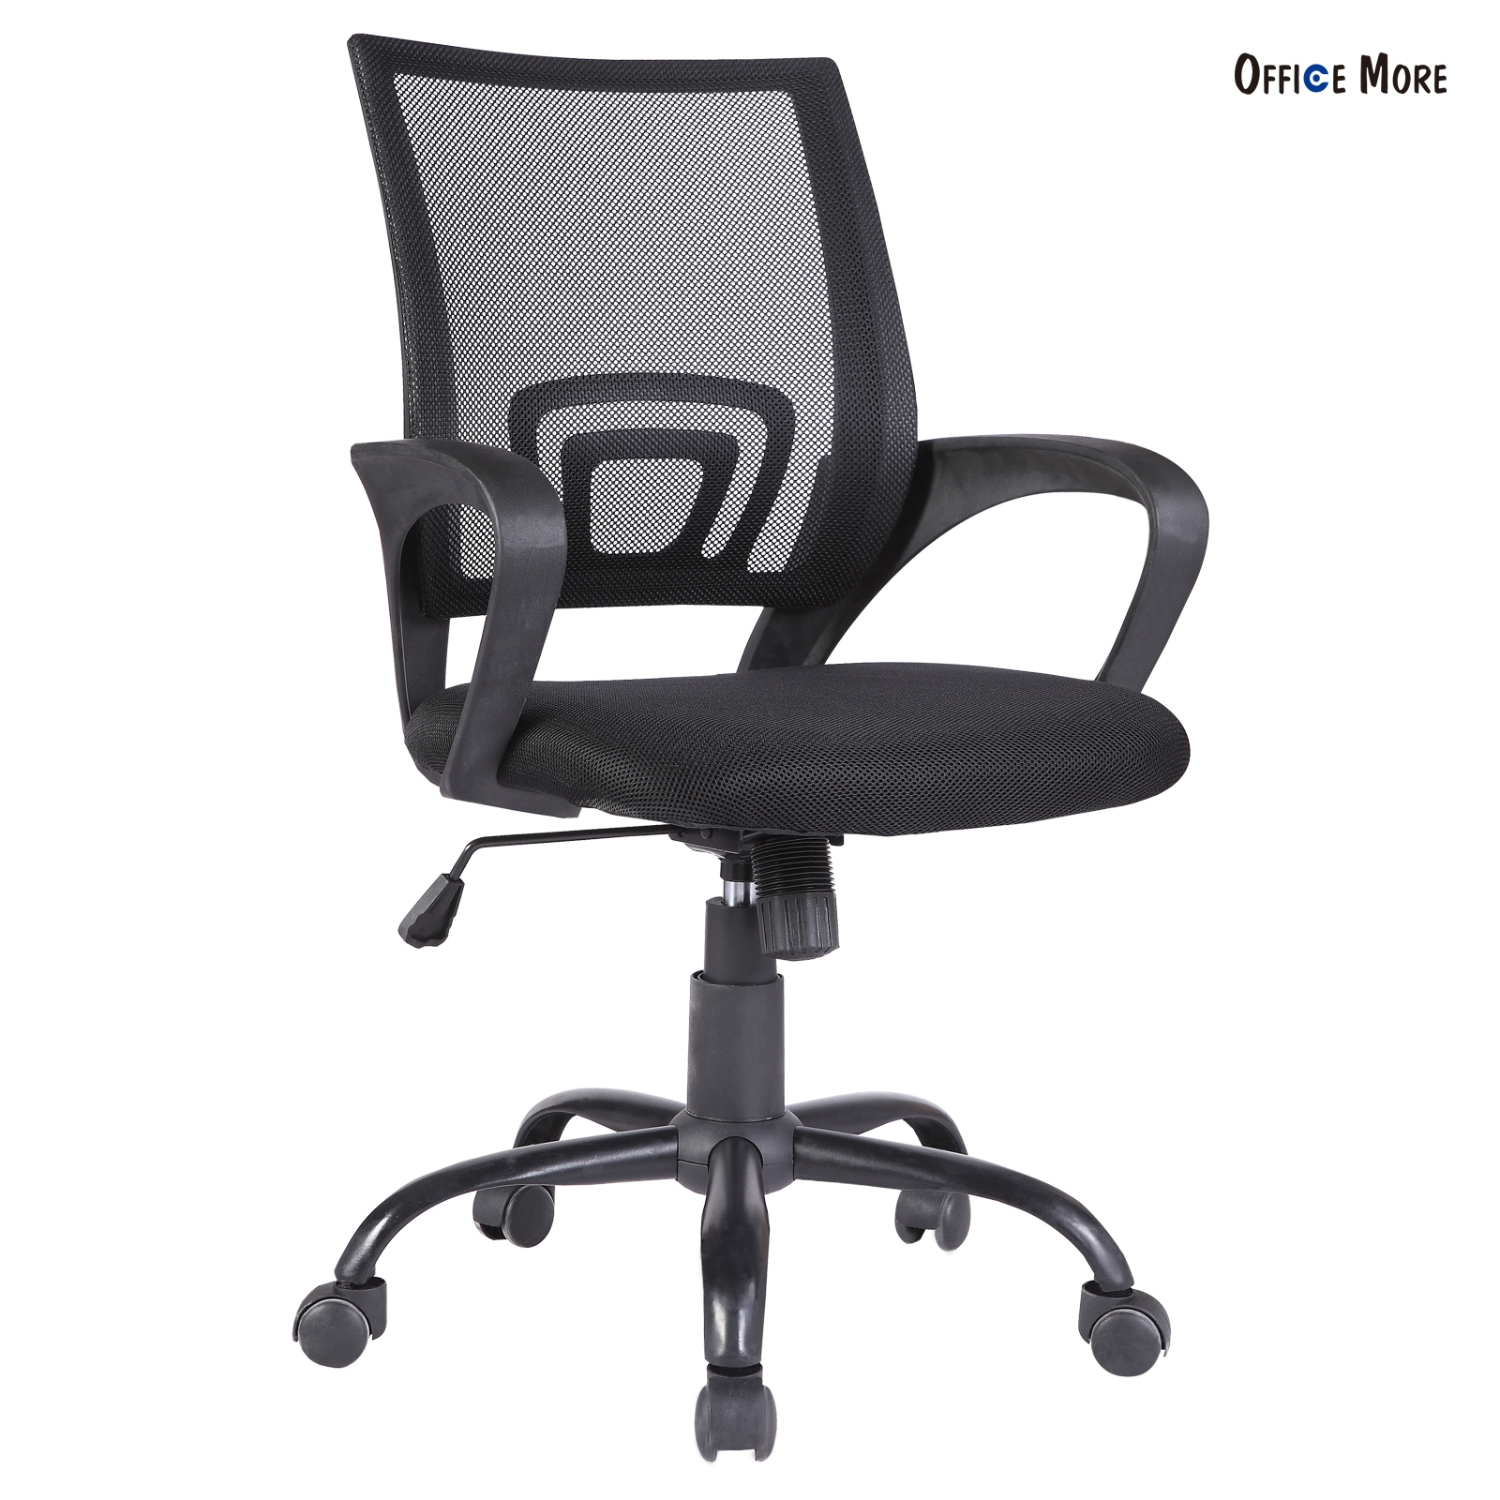 swivel chair wooden legs office autocad block ergonomic executive mesh computer desk